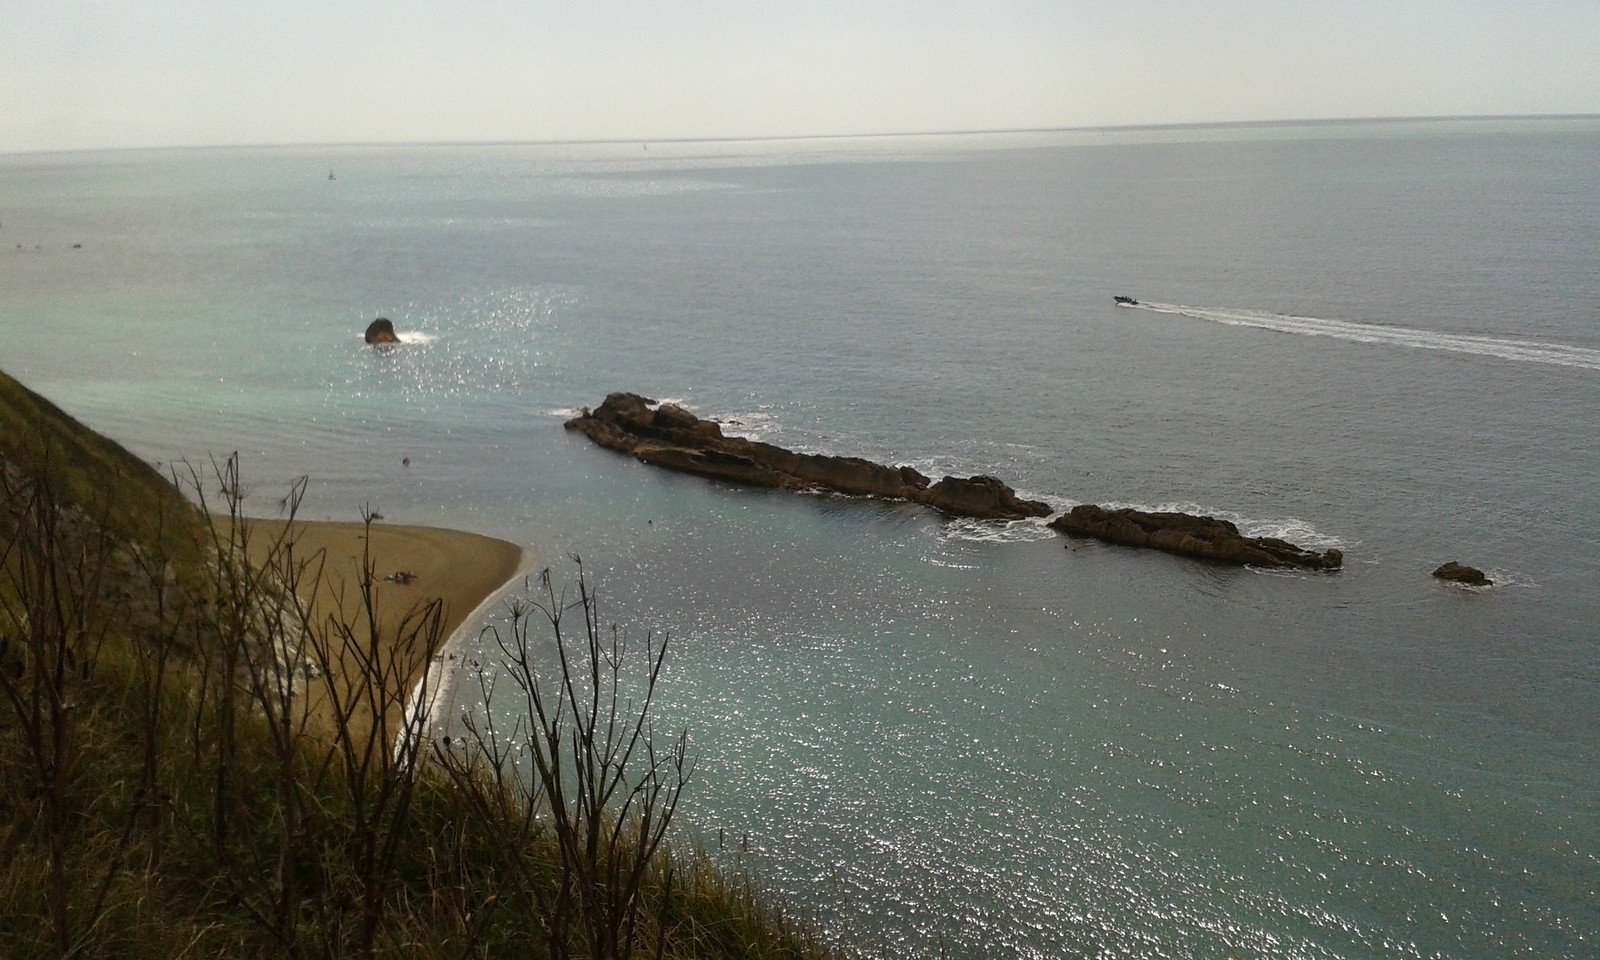 20150815_113738 Near Durdle Door